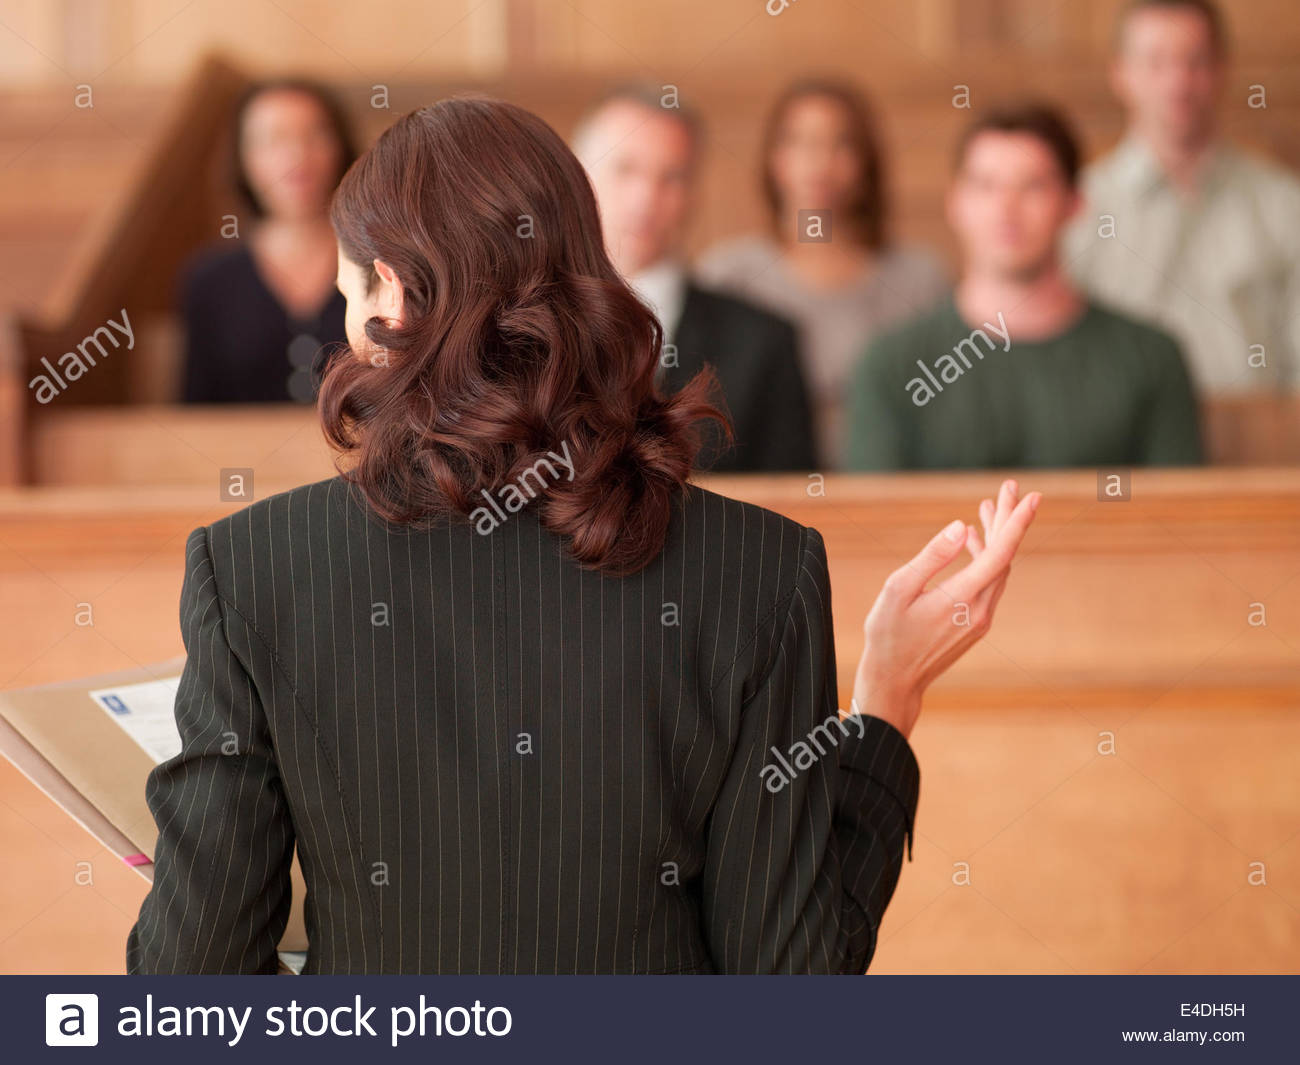 Lawyer holding document and speaking to jury in courtroom - Stock Image